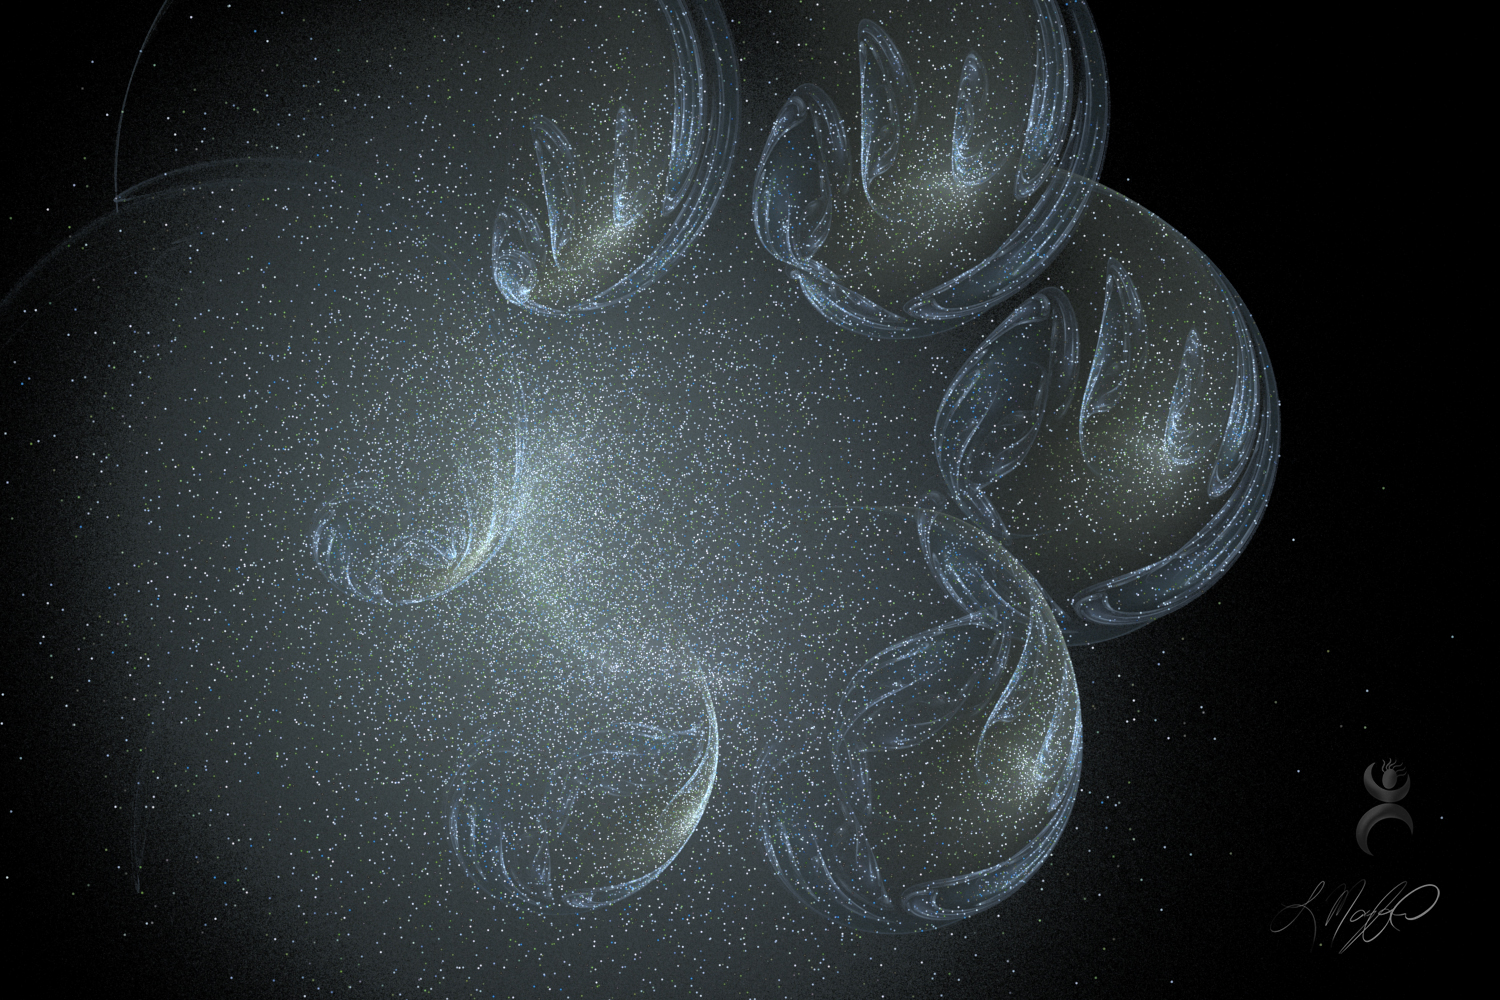 """Cosmic Embryos"", created with Apophysis 7X"